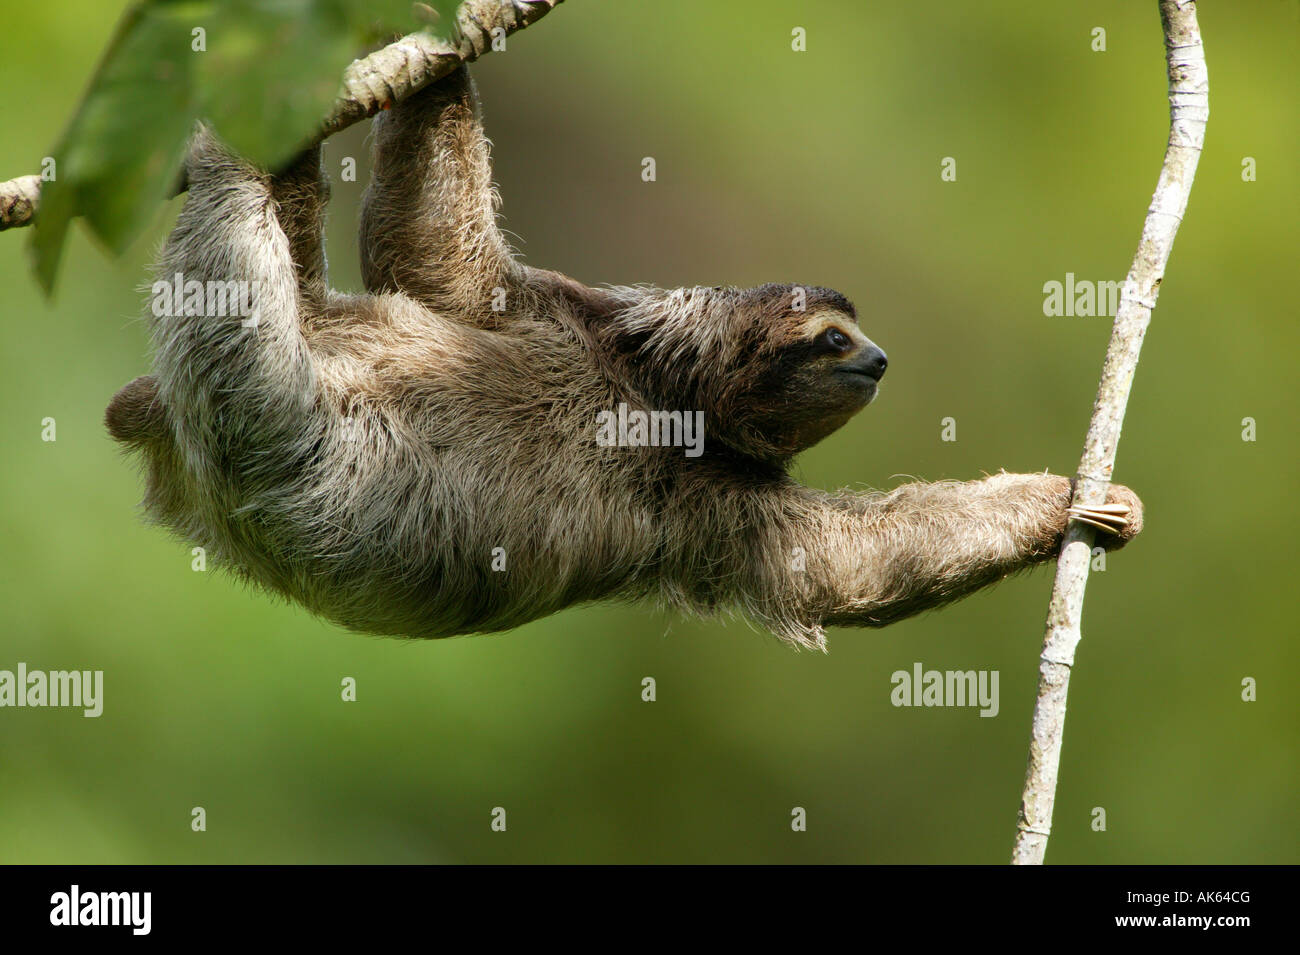 Three-toed Sloth in the 265 hectares rainforest Metropolitan park, Panama province, Republic of Panama. - Stock Image